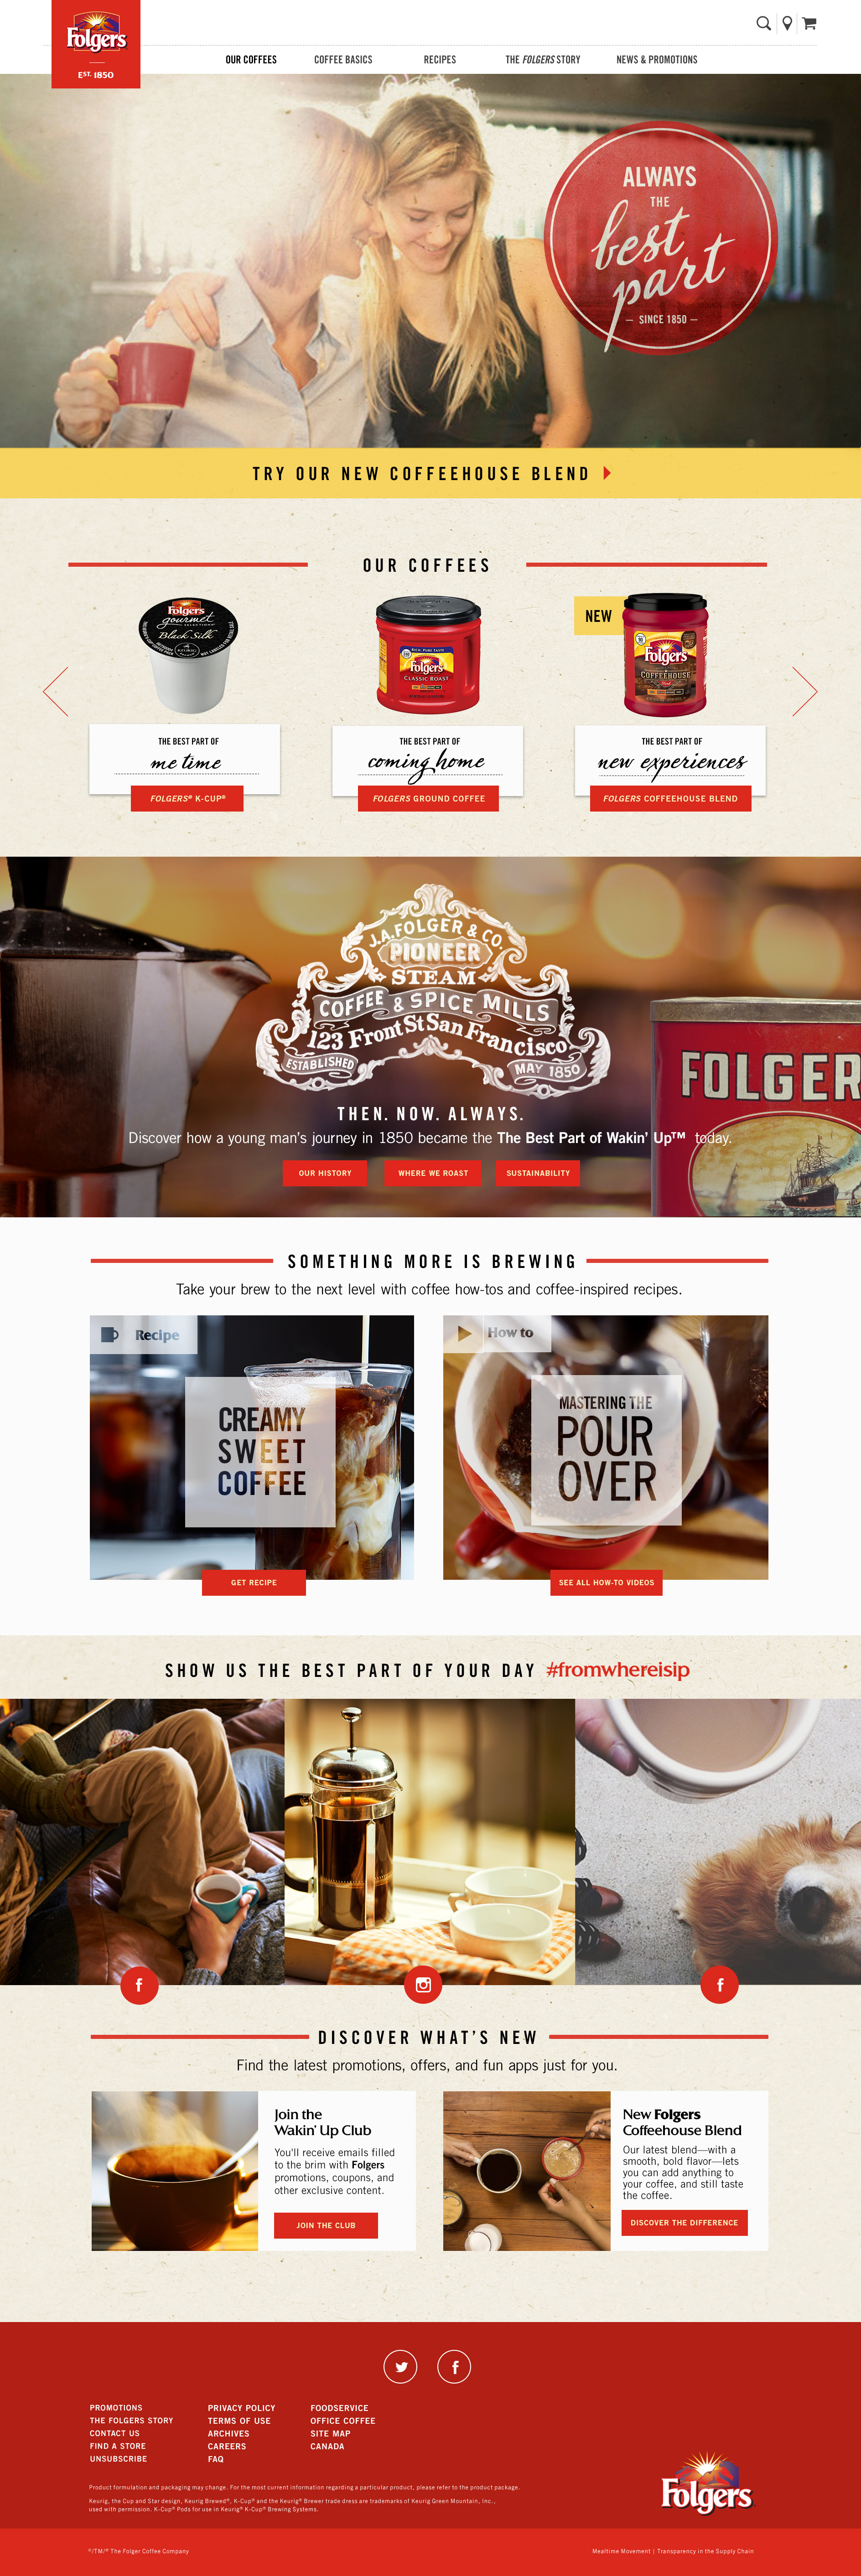 Folgers Home Page